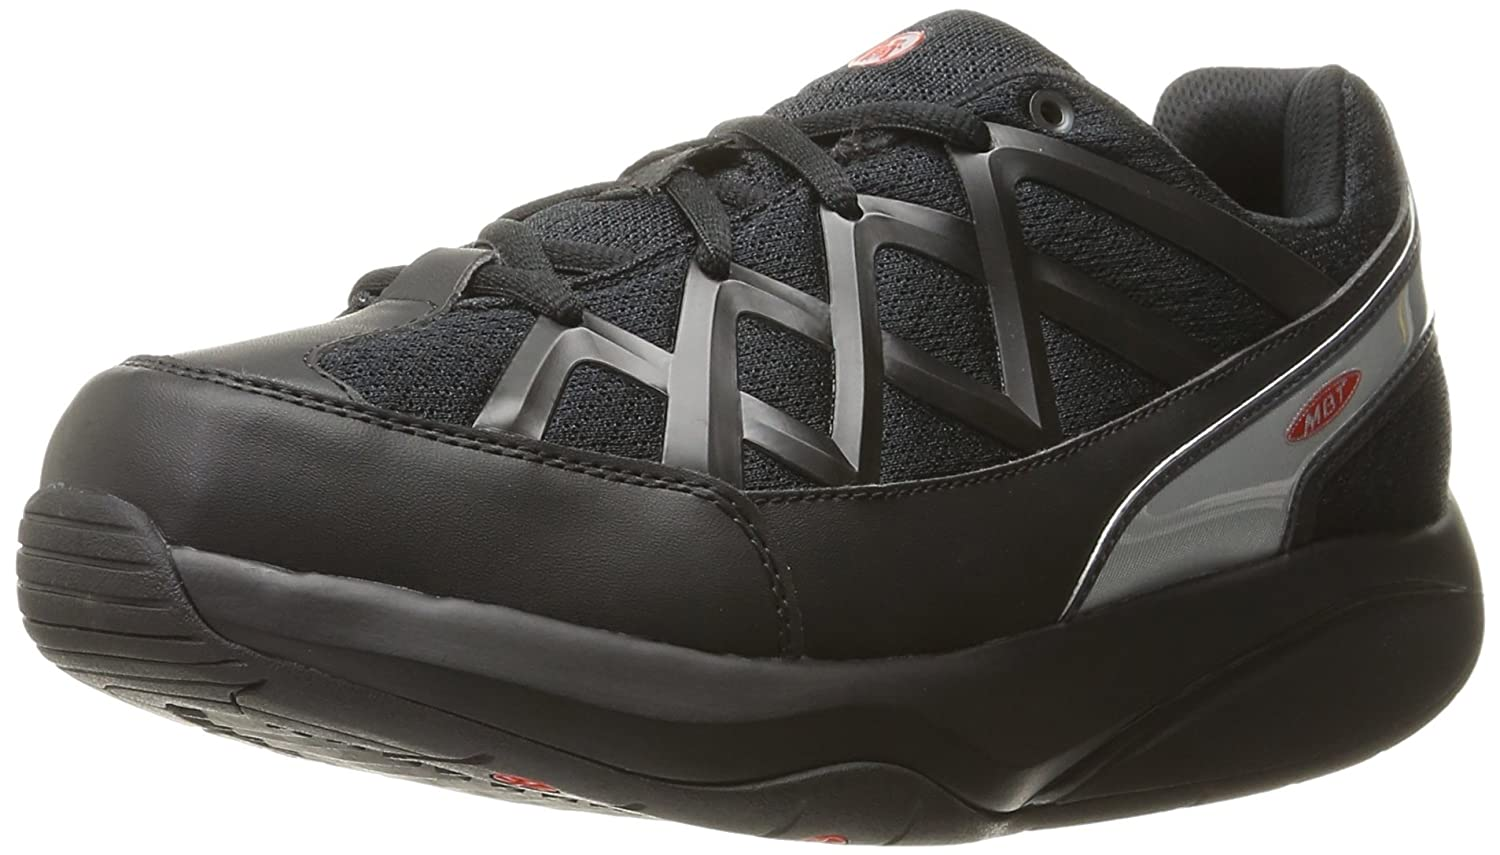 MBT SHOE BLACK 400335-03 Sport3 B01BG1XR6A 24.5 cm|Black Black 24.5 cm